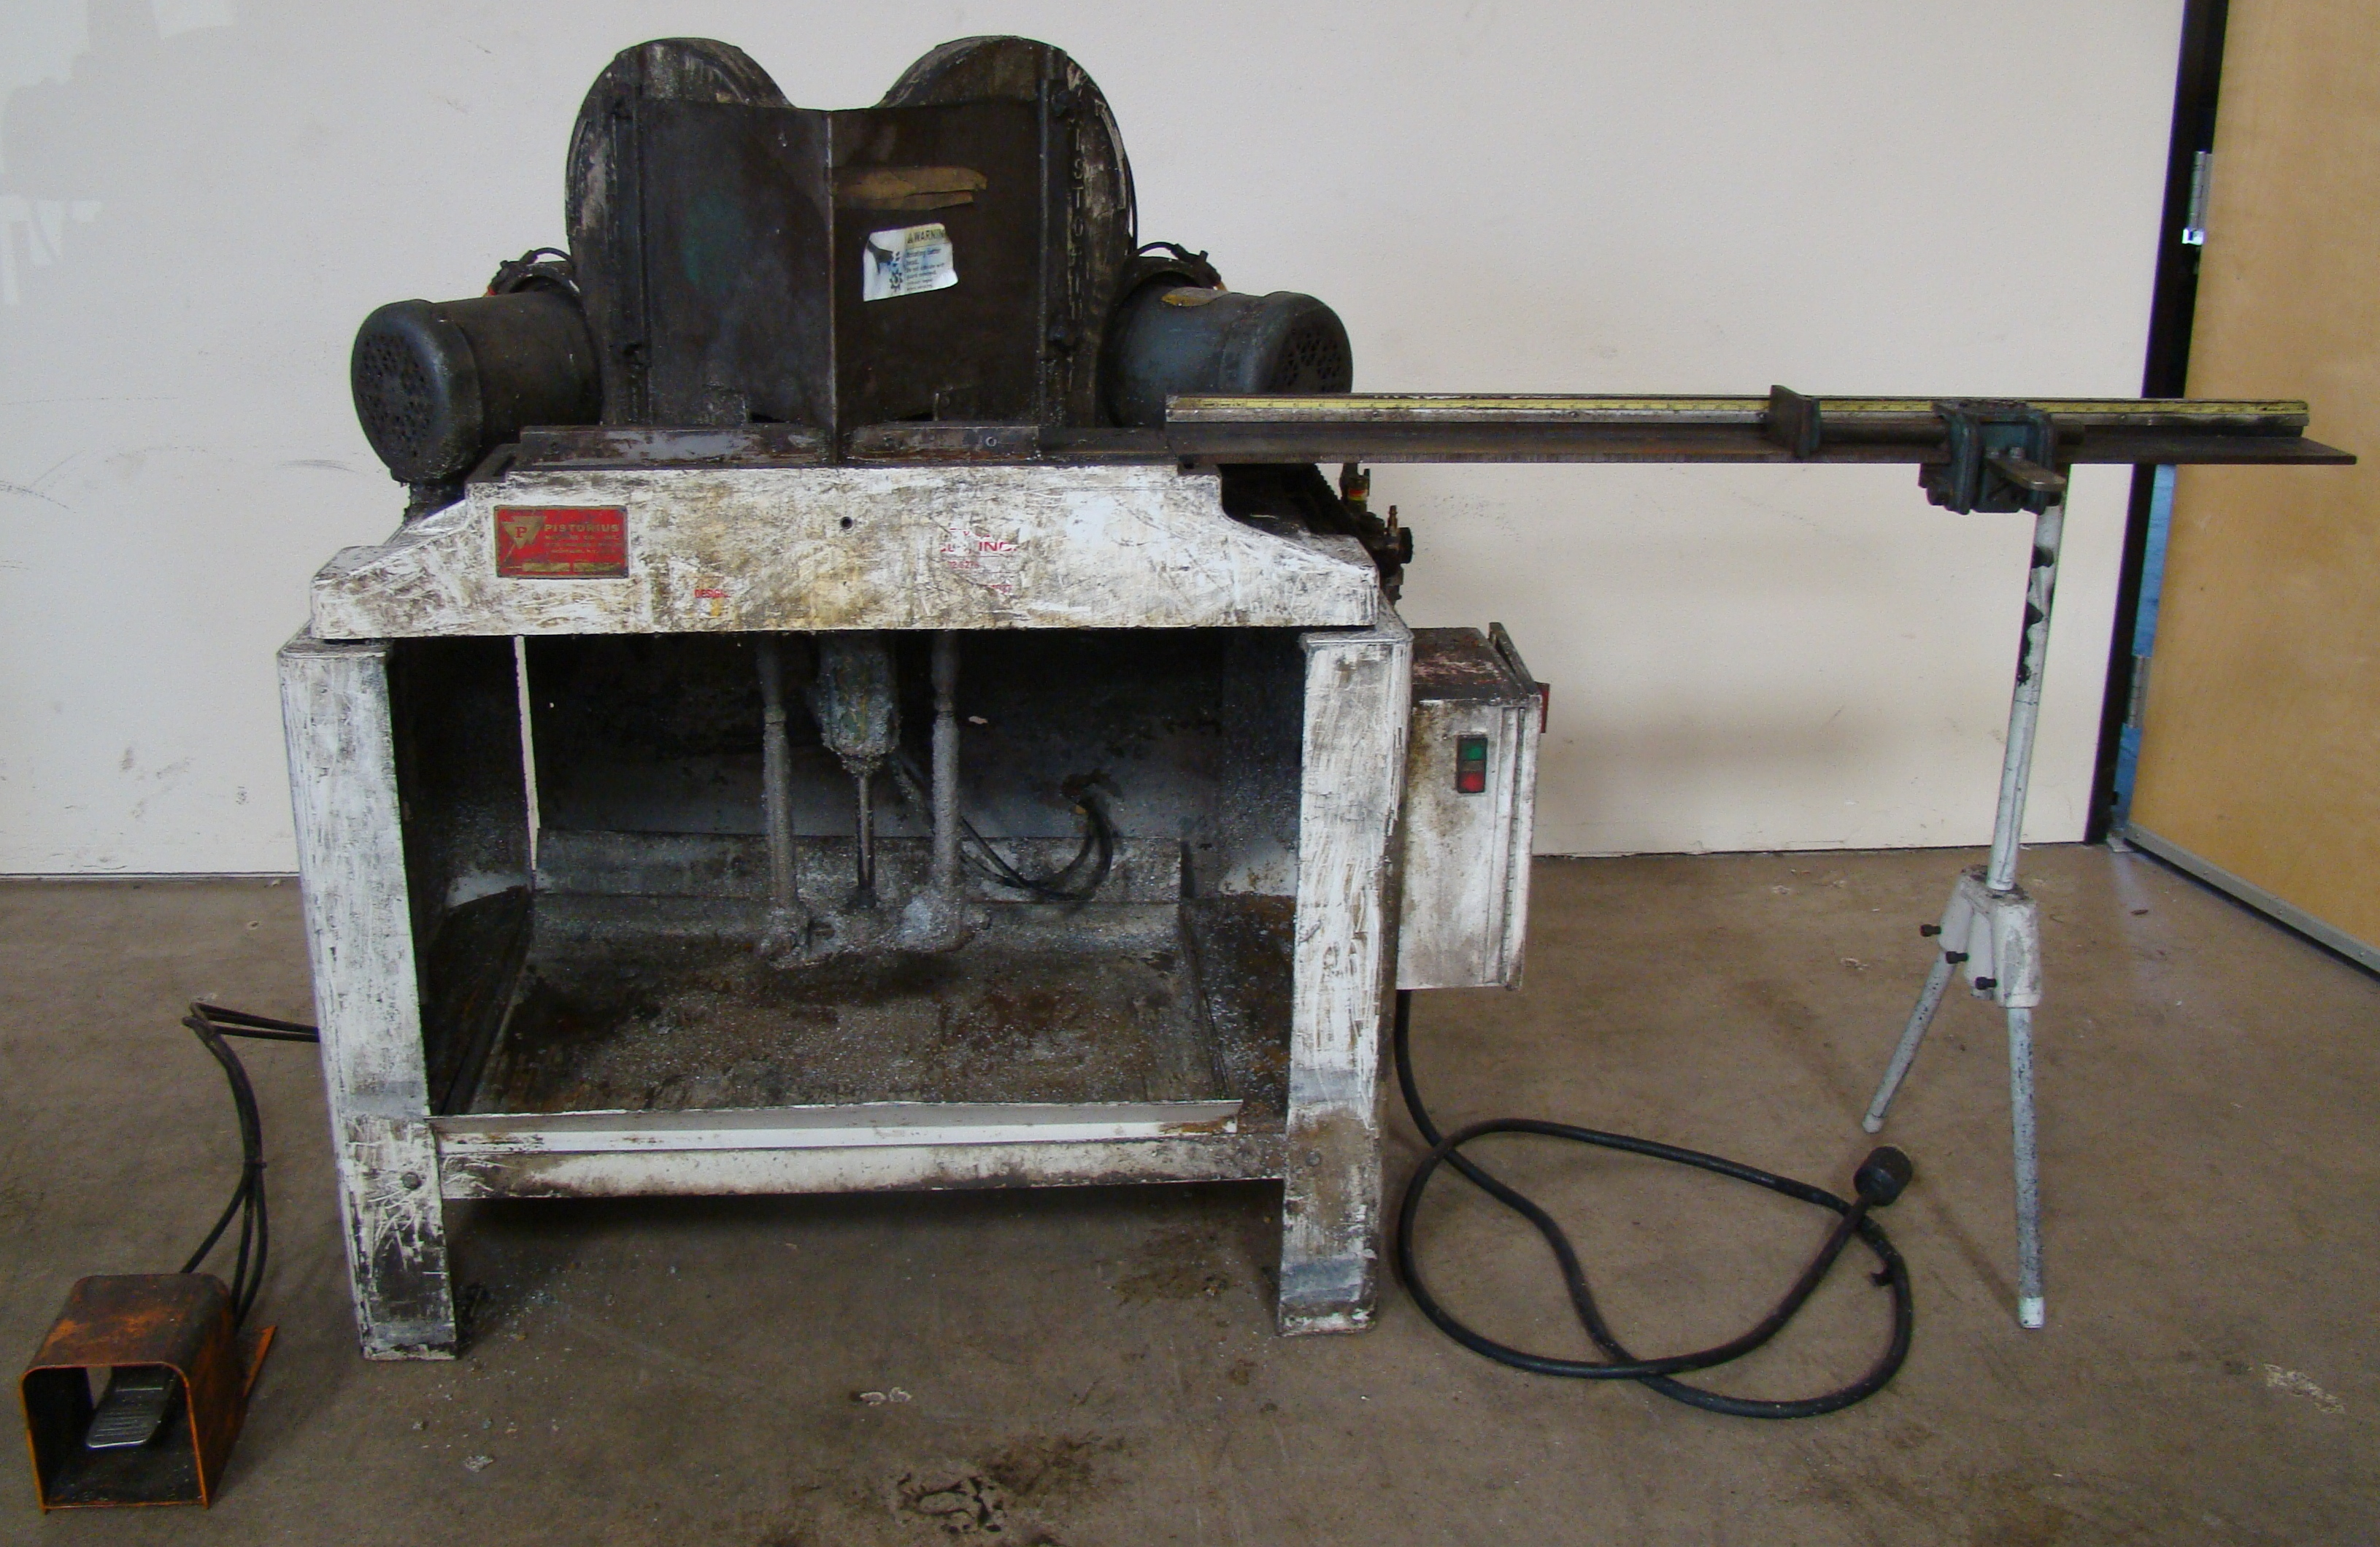 Lot 35 - Pistorius MN-100 Double Miter Cut-off Saw 45 Degree Trim Chop Saw, Has 2 - 1-1/2 HP 230/460 Volt 3PH